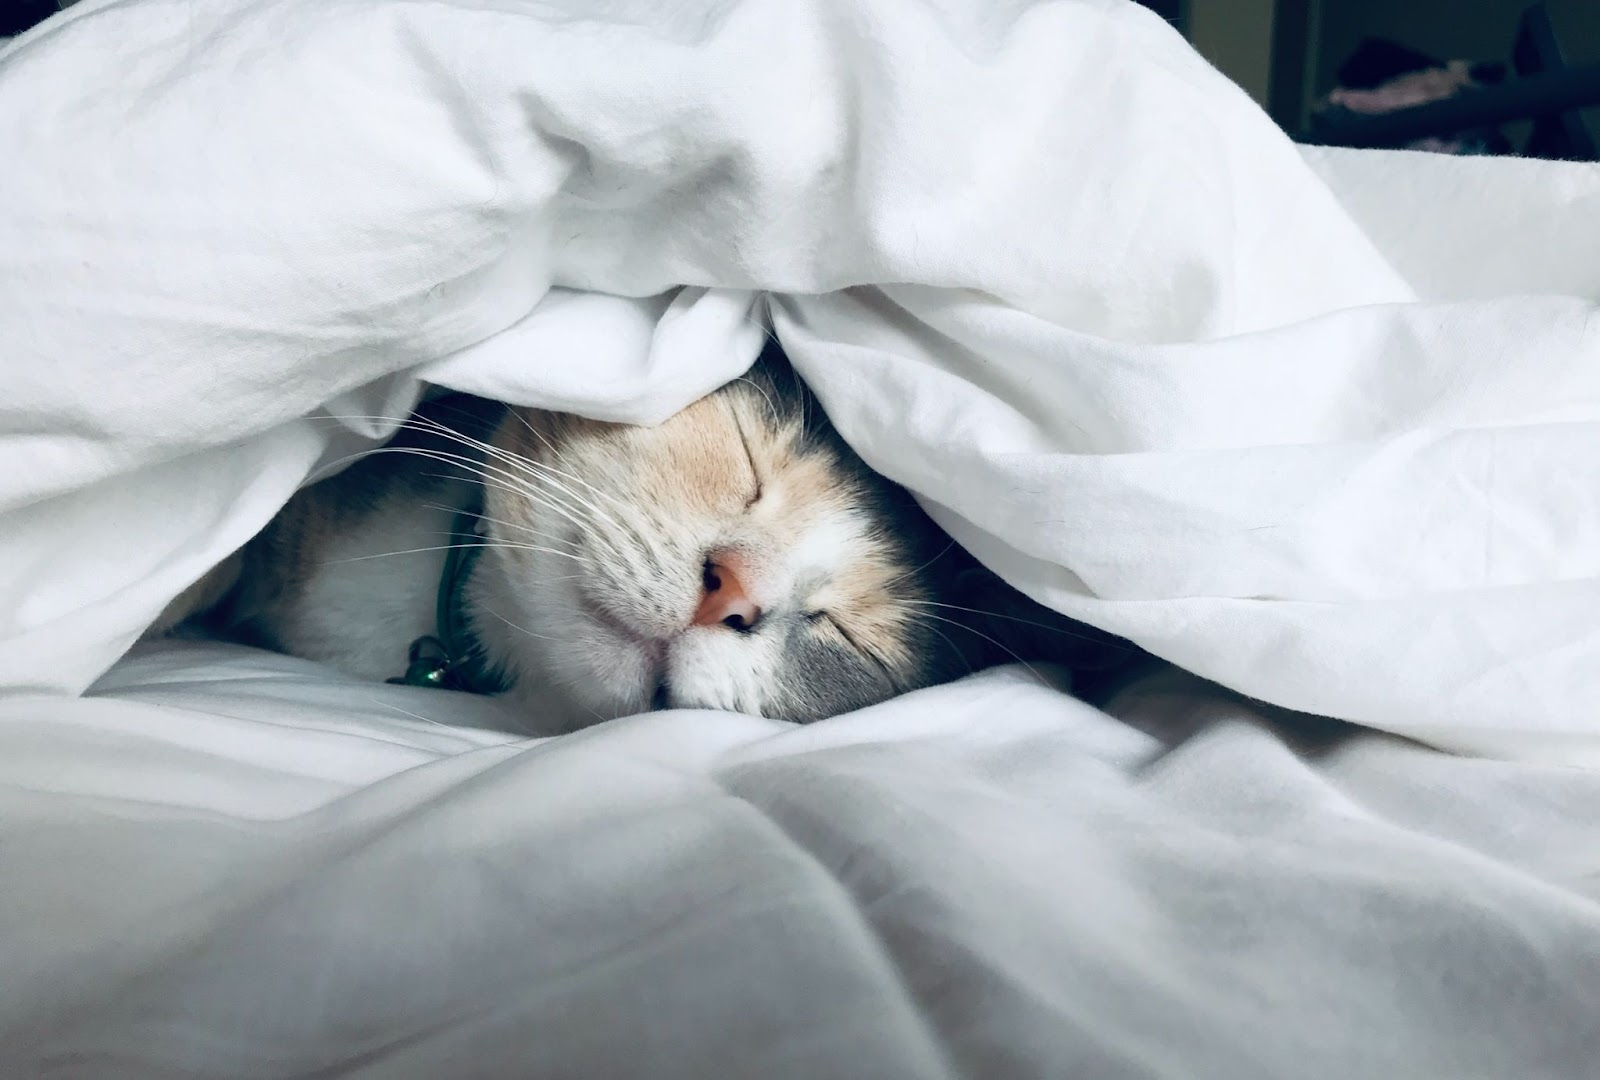 Cat trying to sleep under a blanket